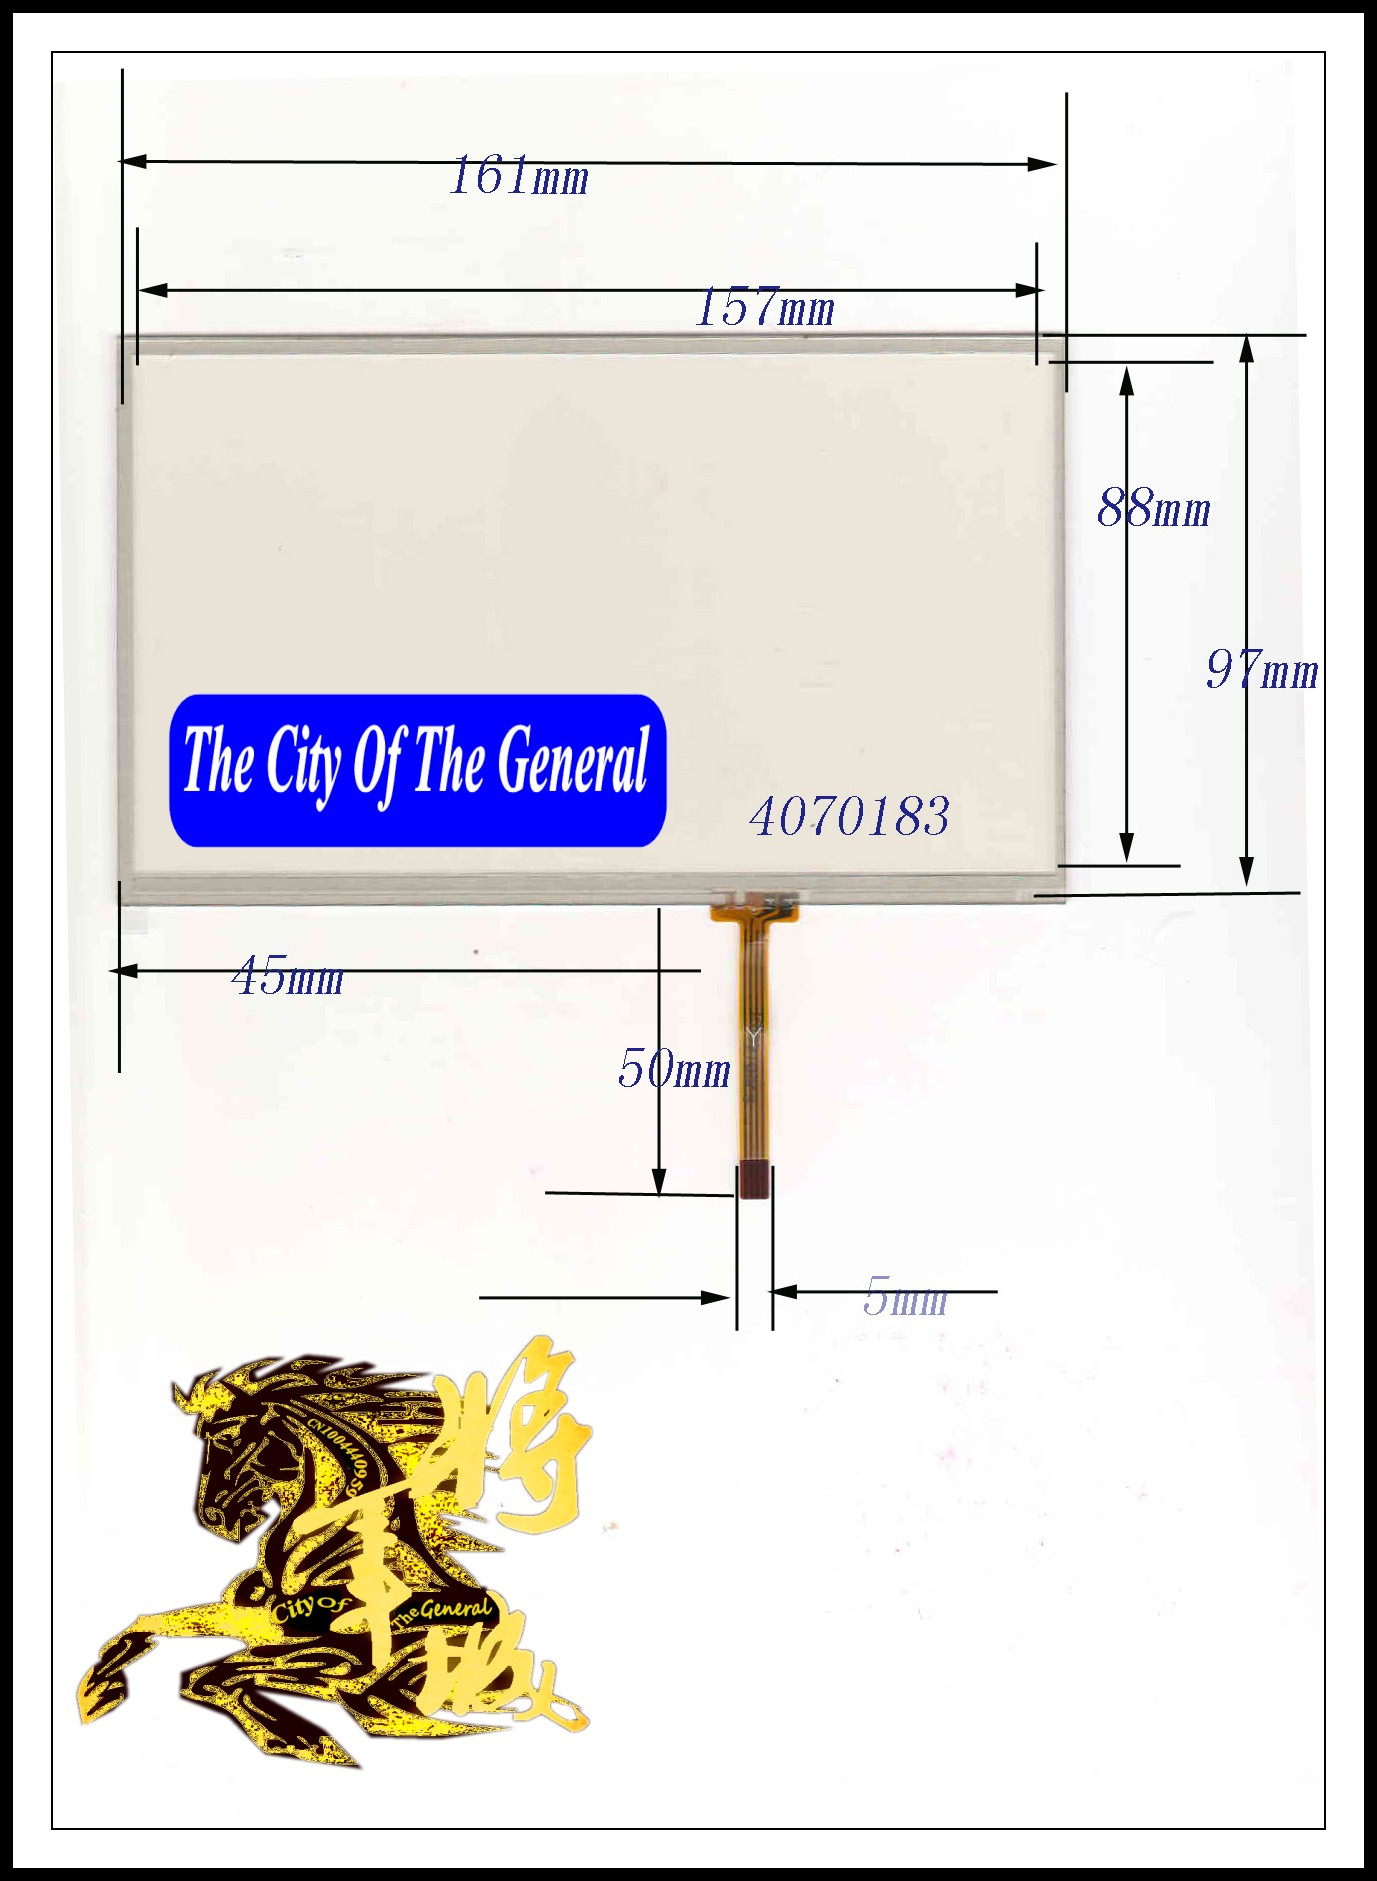 GENCTY For 7-inch four-wire resistive touch screen 161 * 97MM W-X